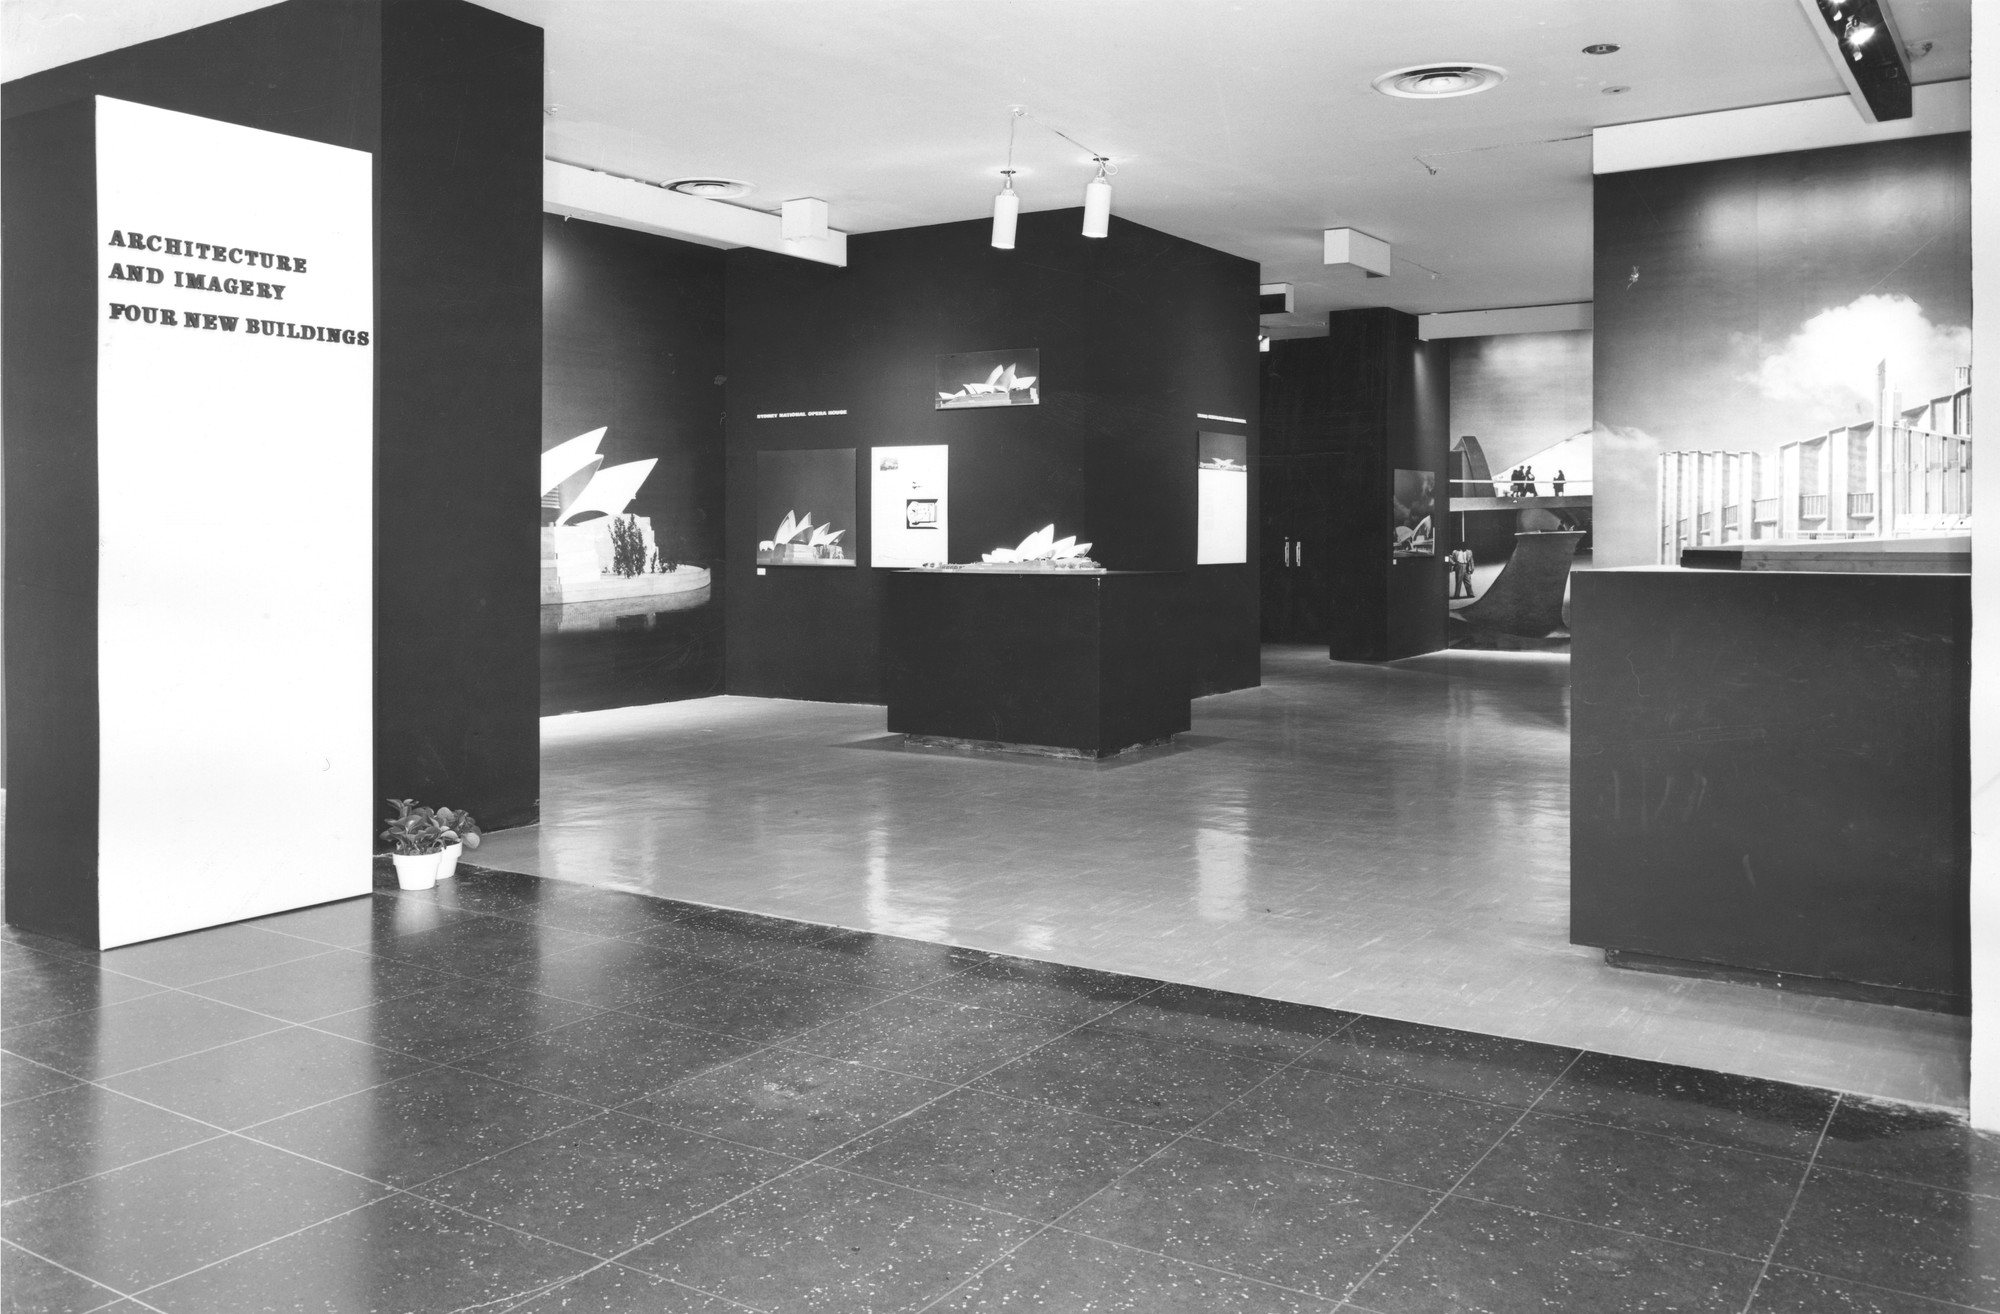 "Installation view of the exhibition, ""Architecture and Imagery:  Four New Buildings"" February 11, 1959–April 19, 1959. The Museum of Modern Art Exhibition Records, 640.4. The Museum of Modern Art Archives, New York. IN640.1. Photograph by George Barrows."